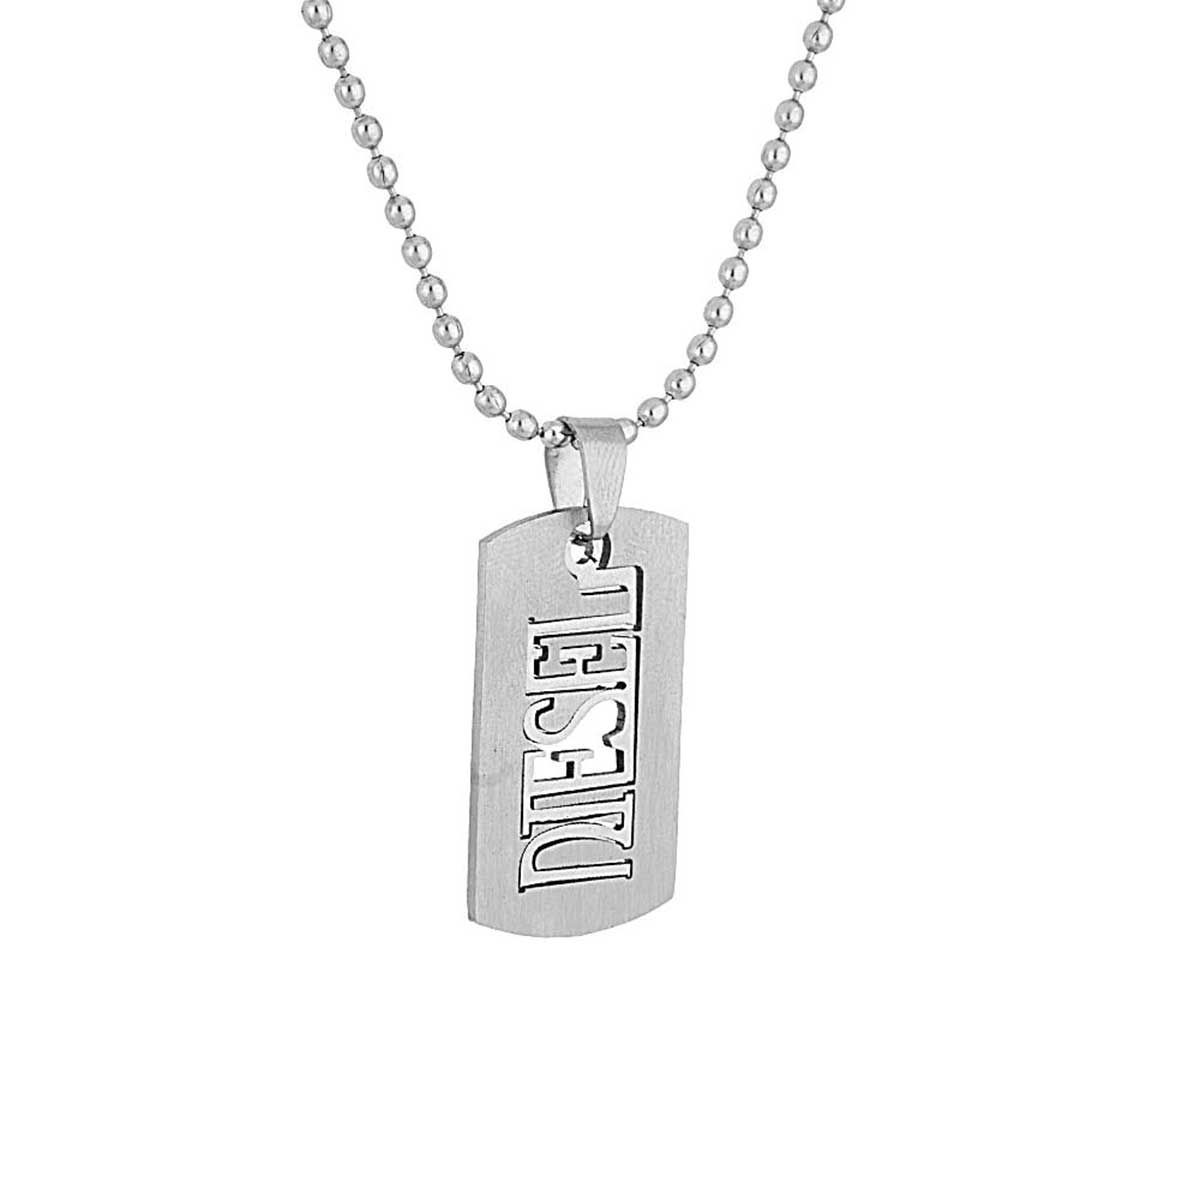 d dogs bead out detailed tag cut necklaces size image dog tungsten pendant products key